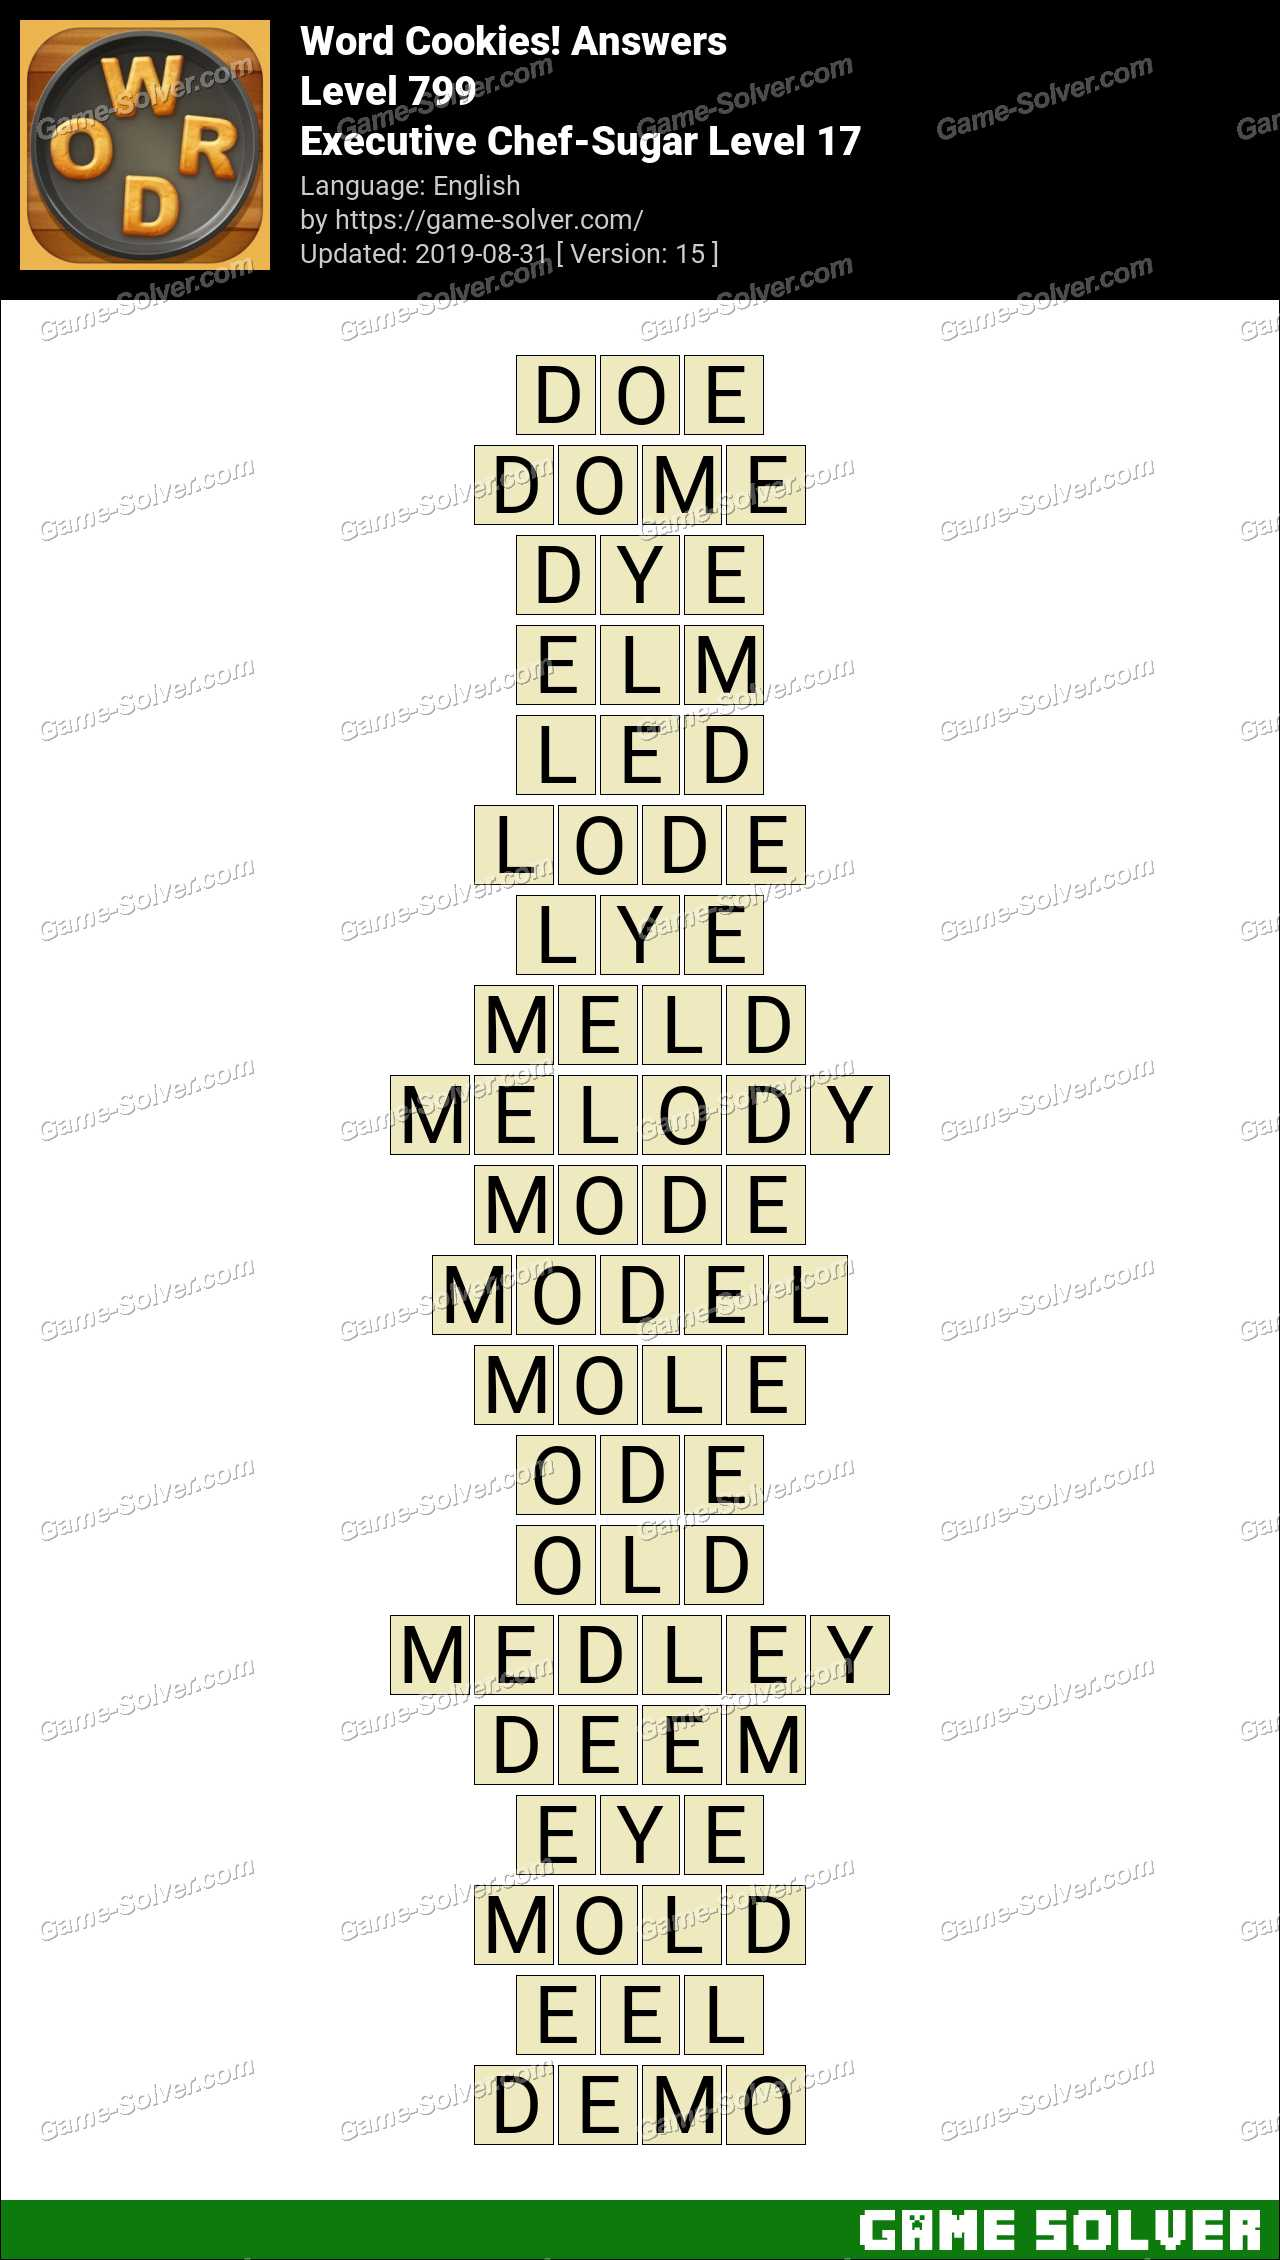 Word Cookies Executive Chef-Sugar Level 17 Answers